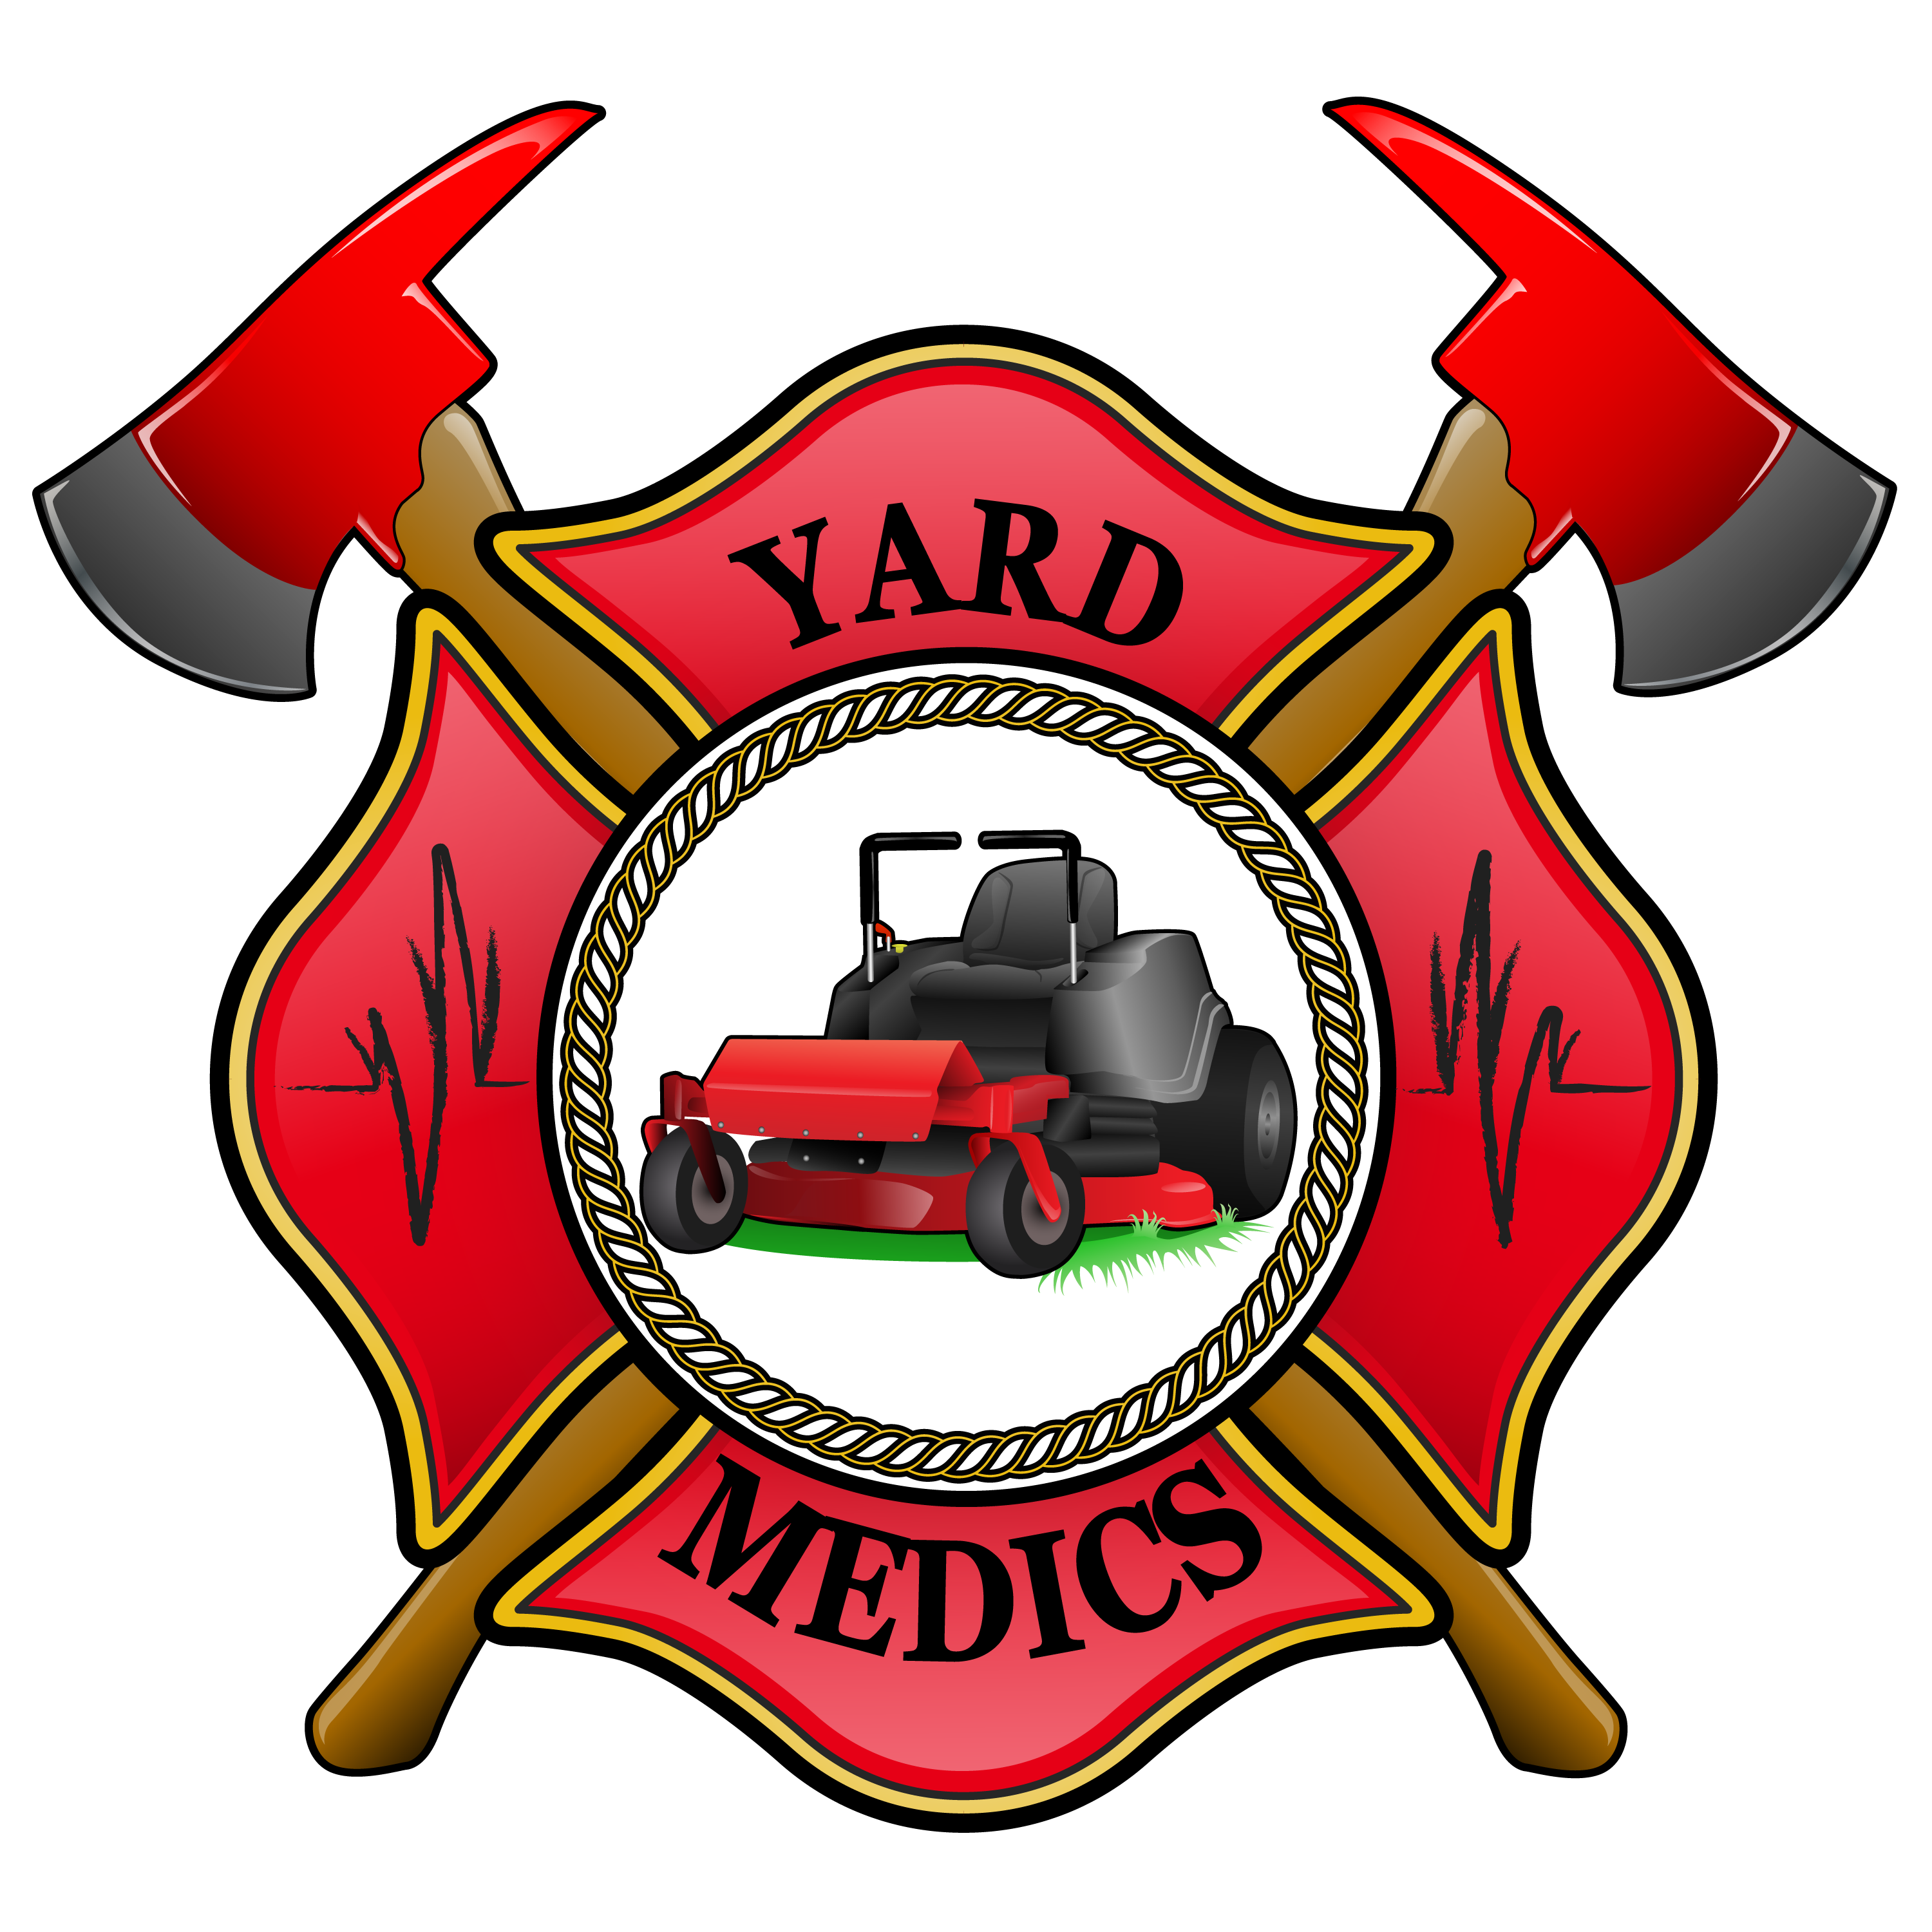 Working clipart yard cleanup. Medics sc supporting the